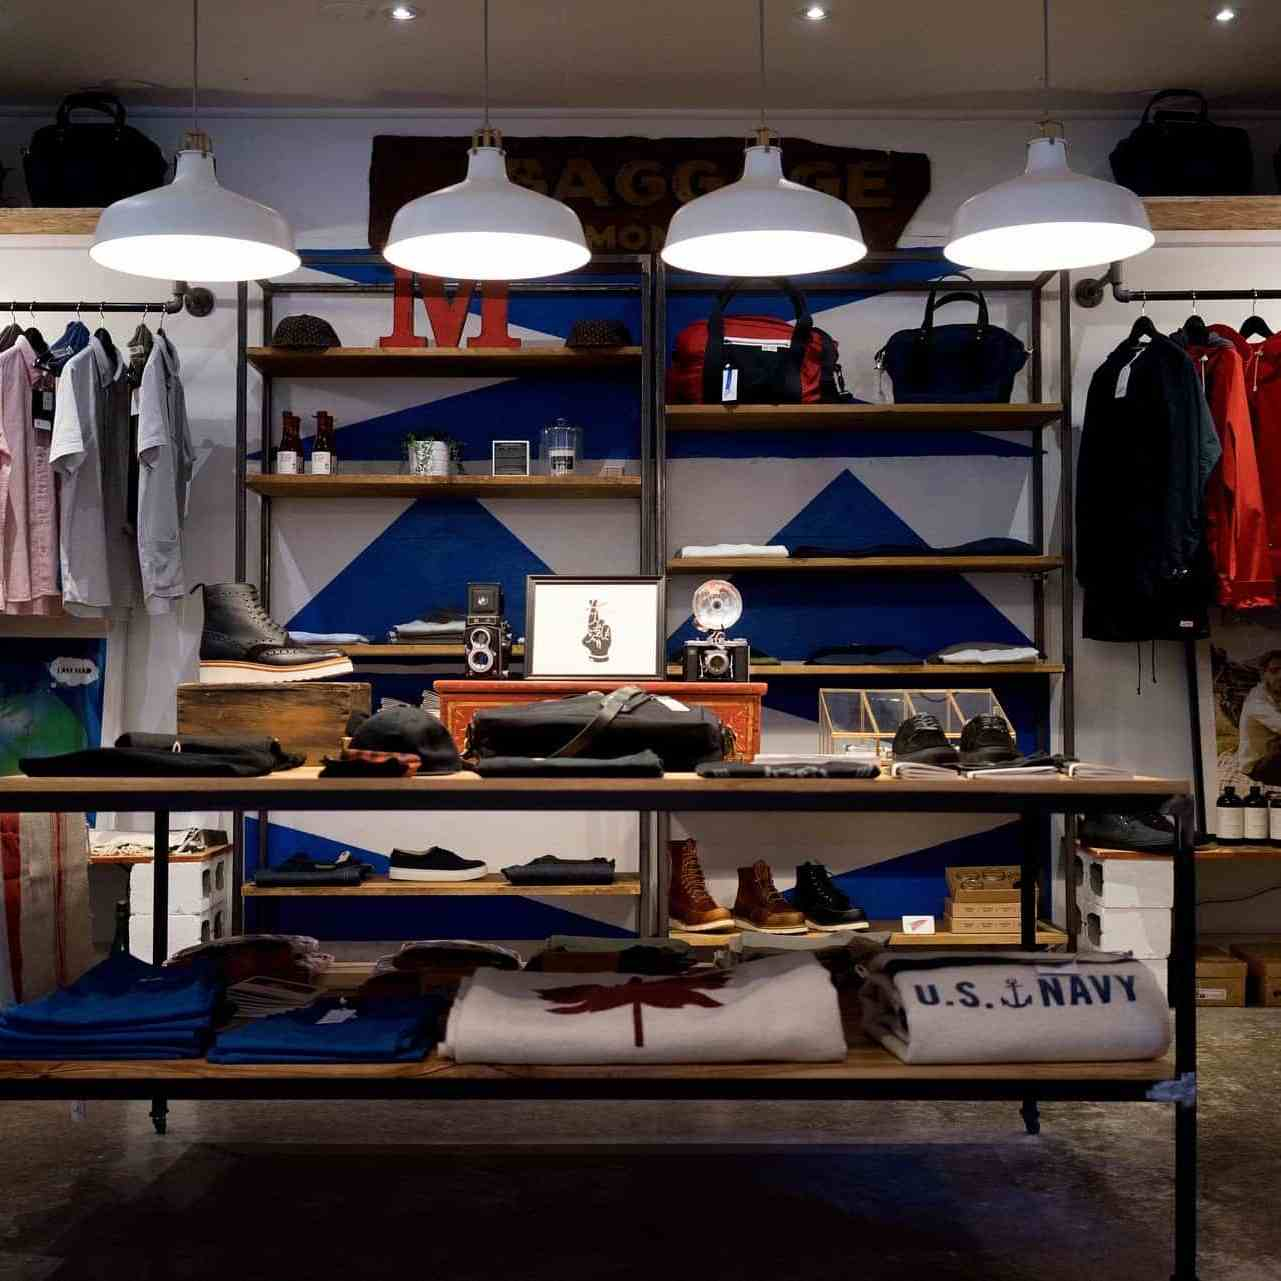 a retail store / showroom with good clean layout